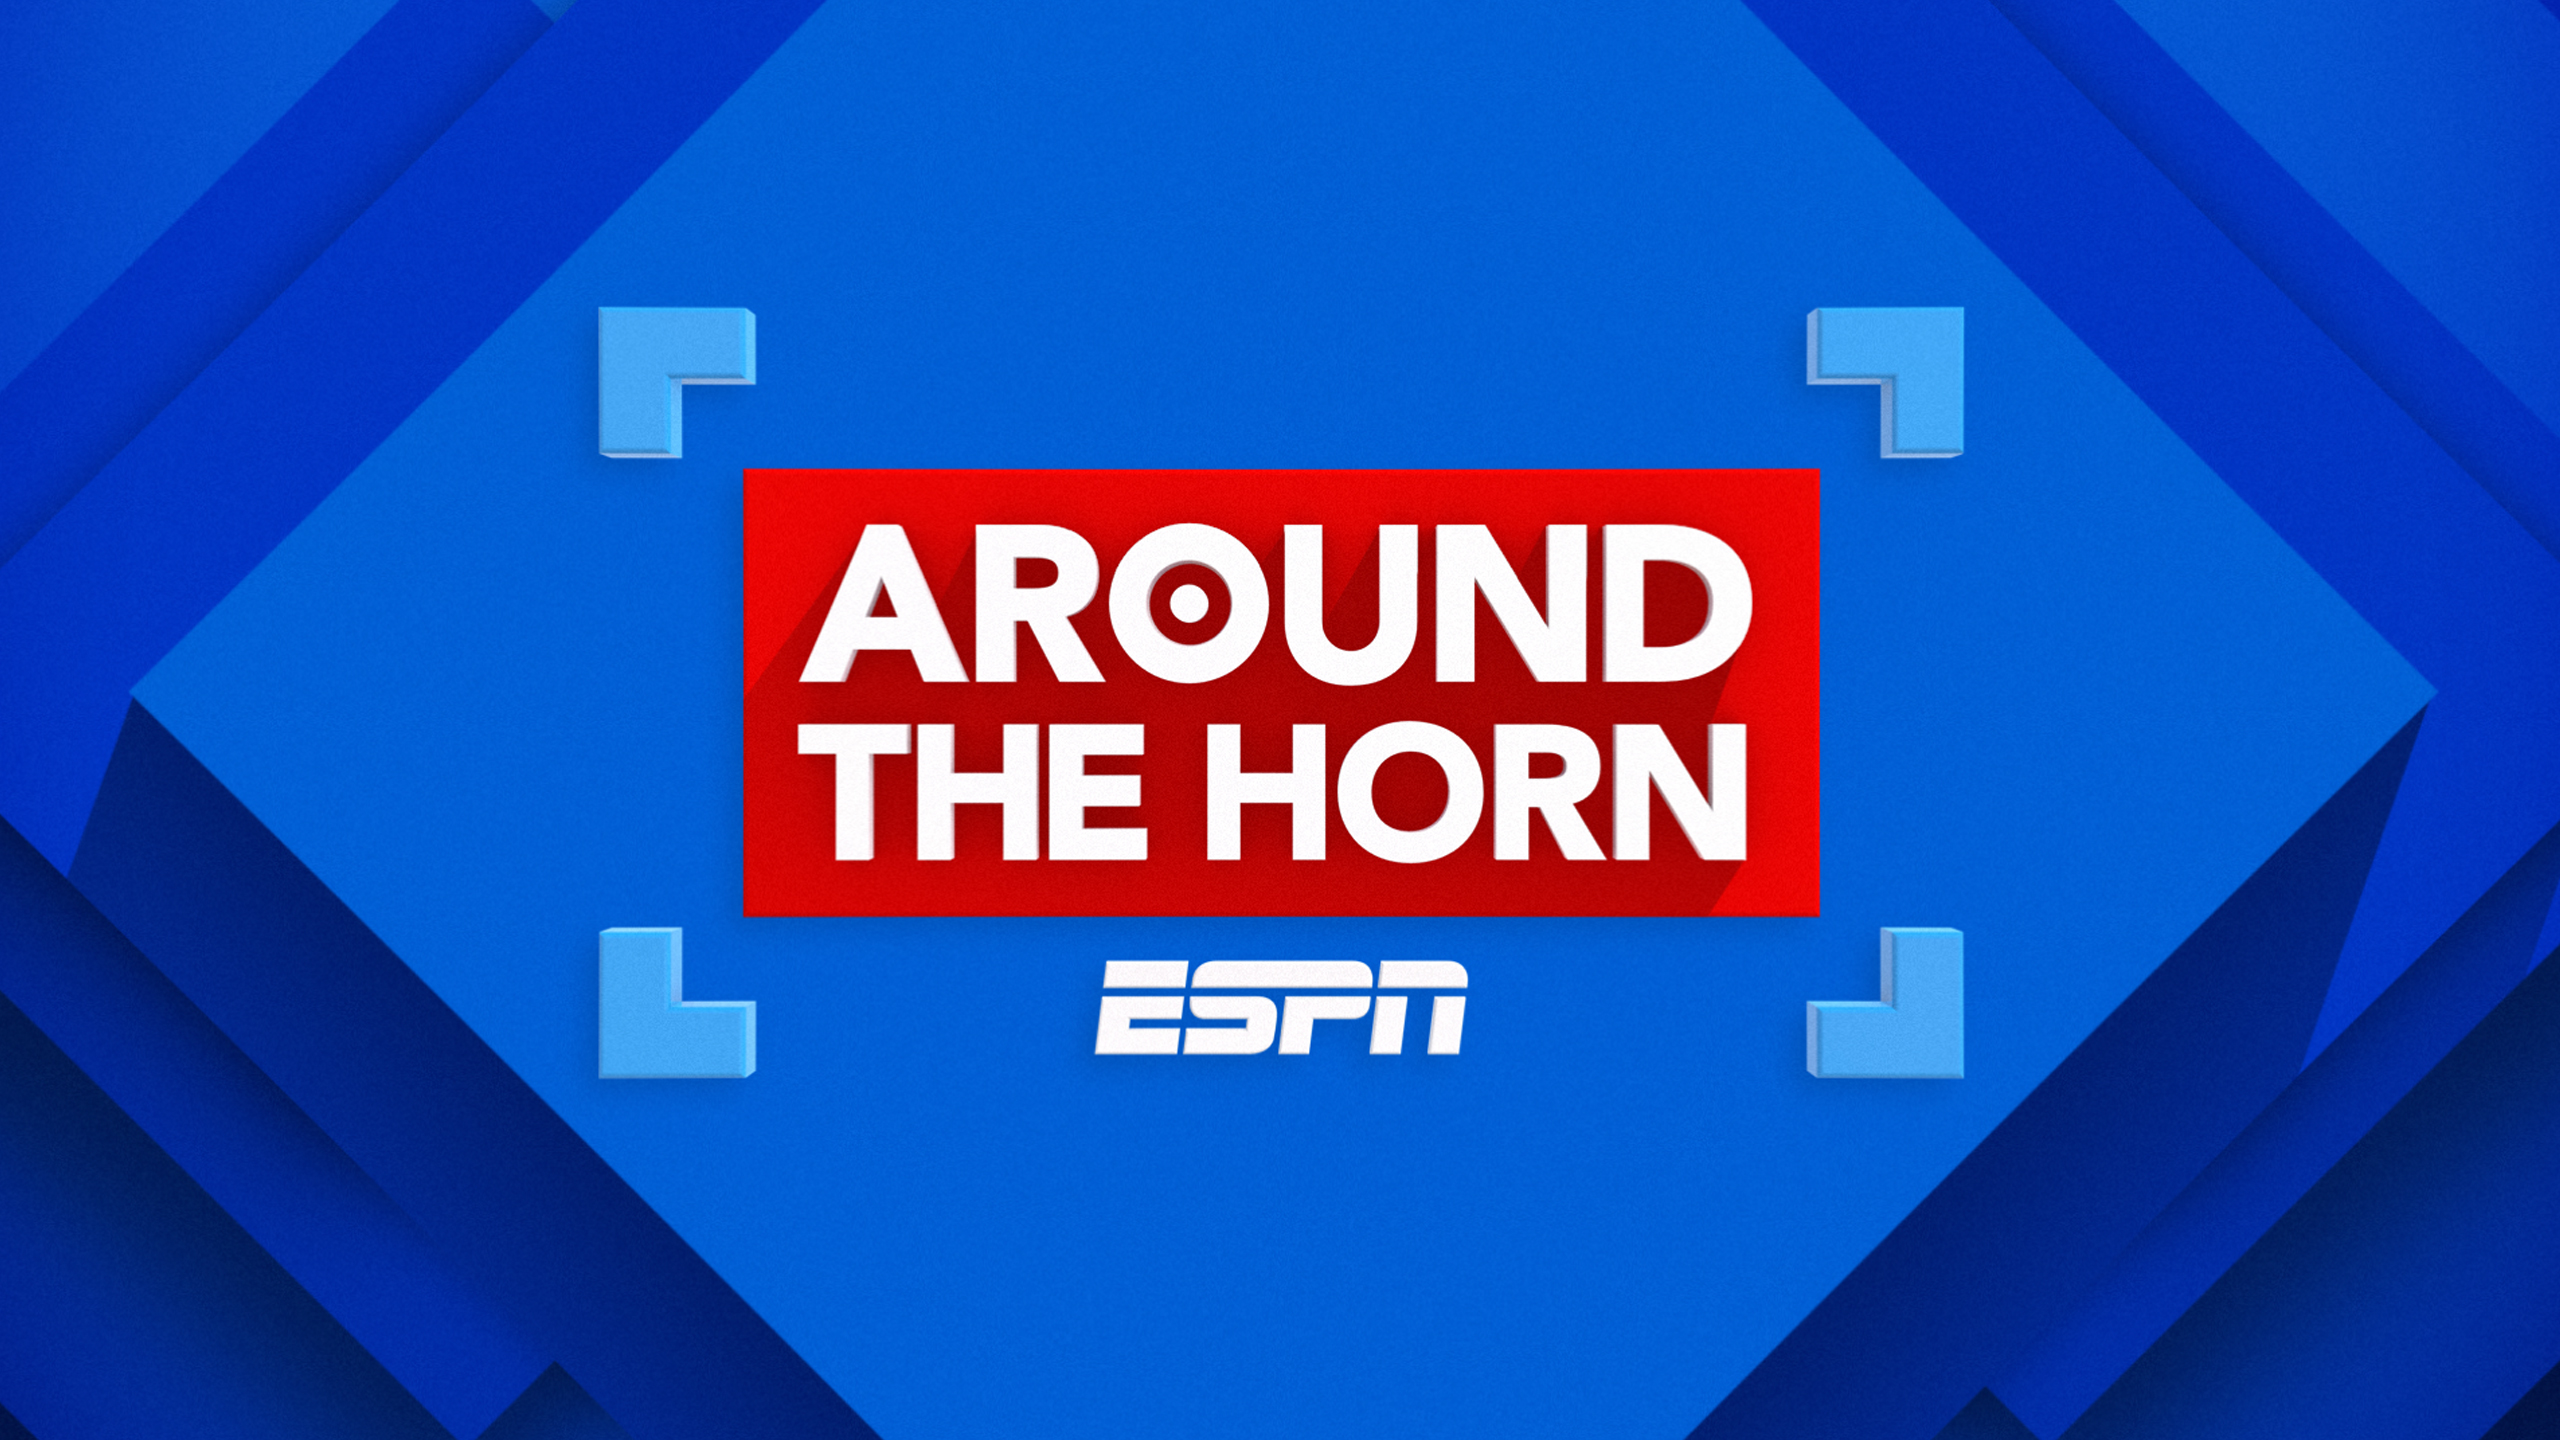 Thu, 4/18 - Around The Horn